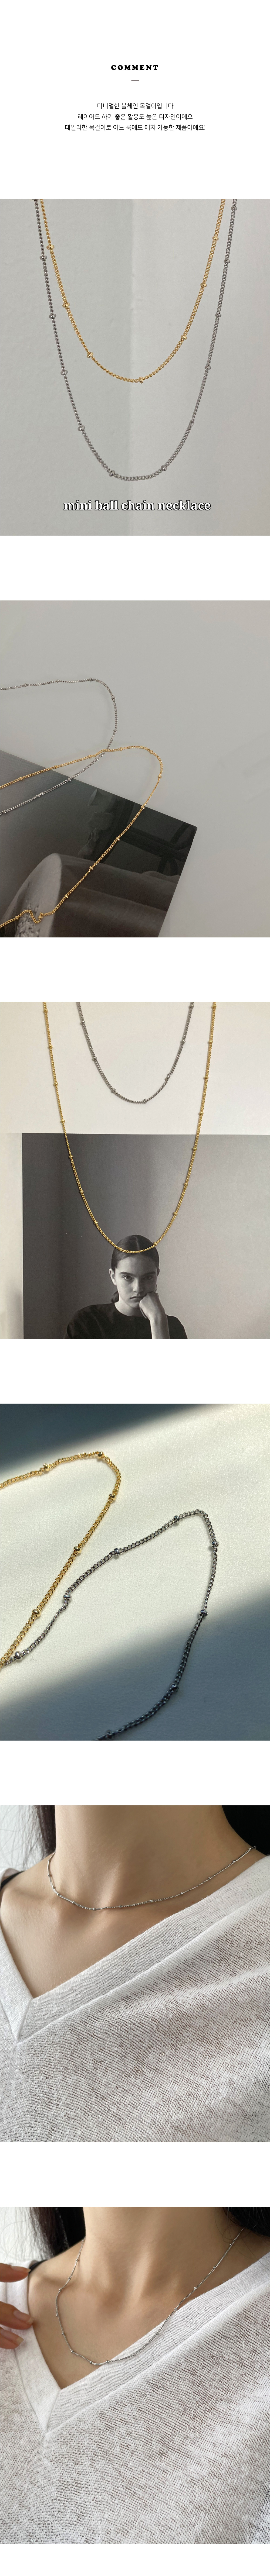 Elfin simple ball chain necklace